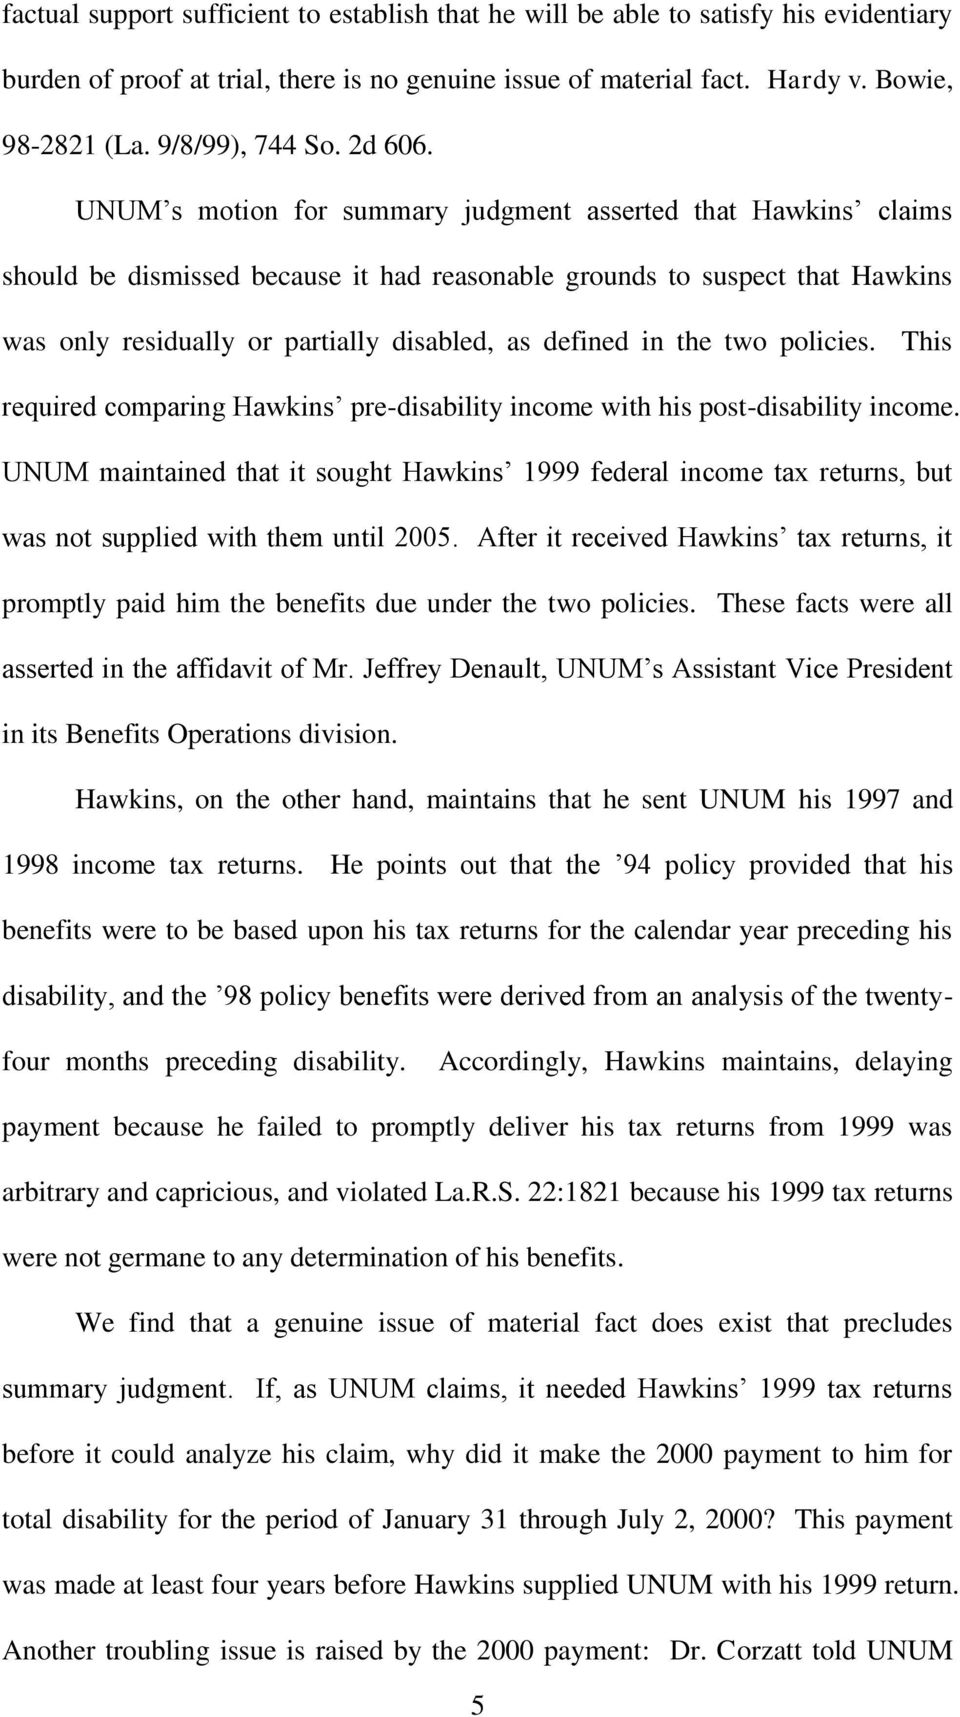 UNUM s motion for summary judgment asserted that Hawkins claims should be dismissed because it had reasonable grounds to suspect that Hawkins was only residually or partially disabled, as defined in